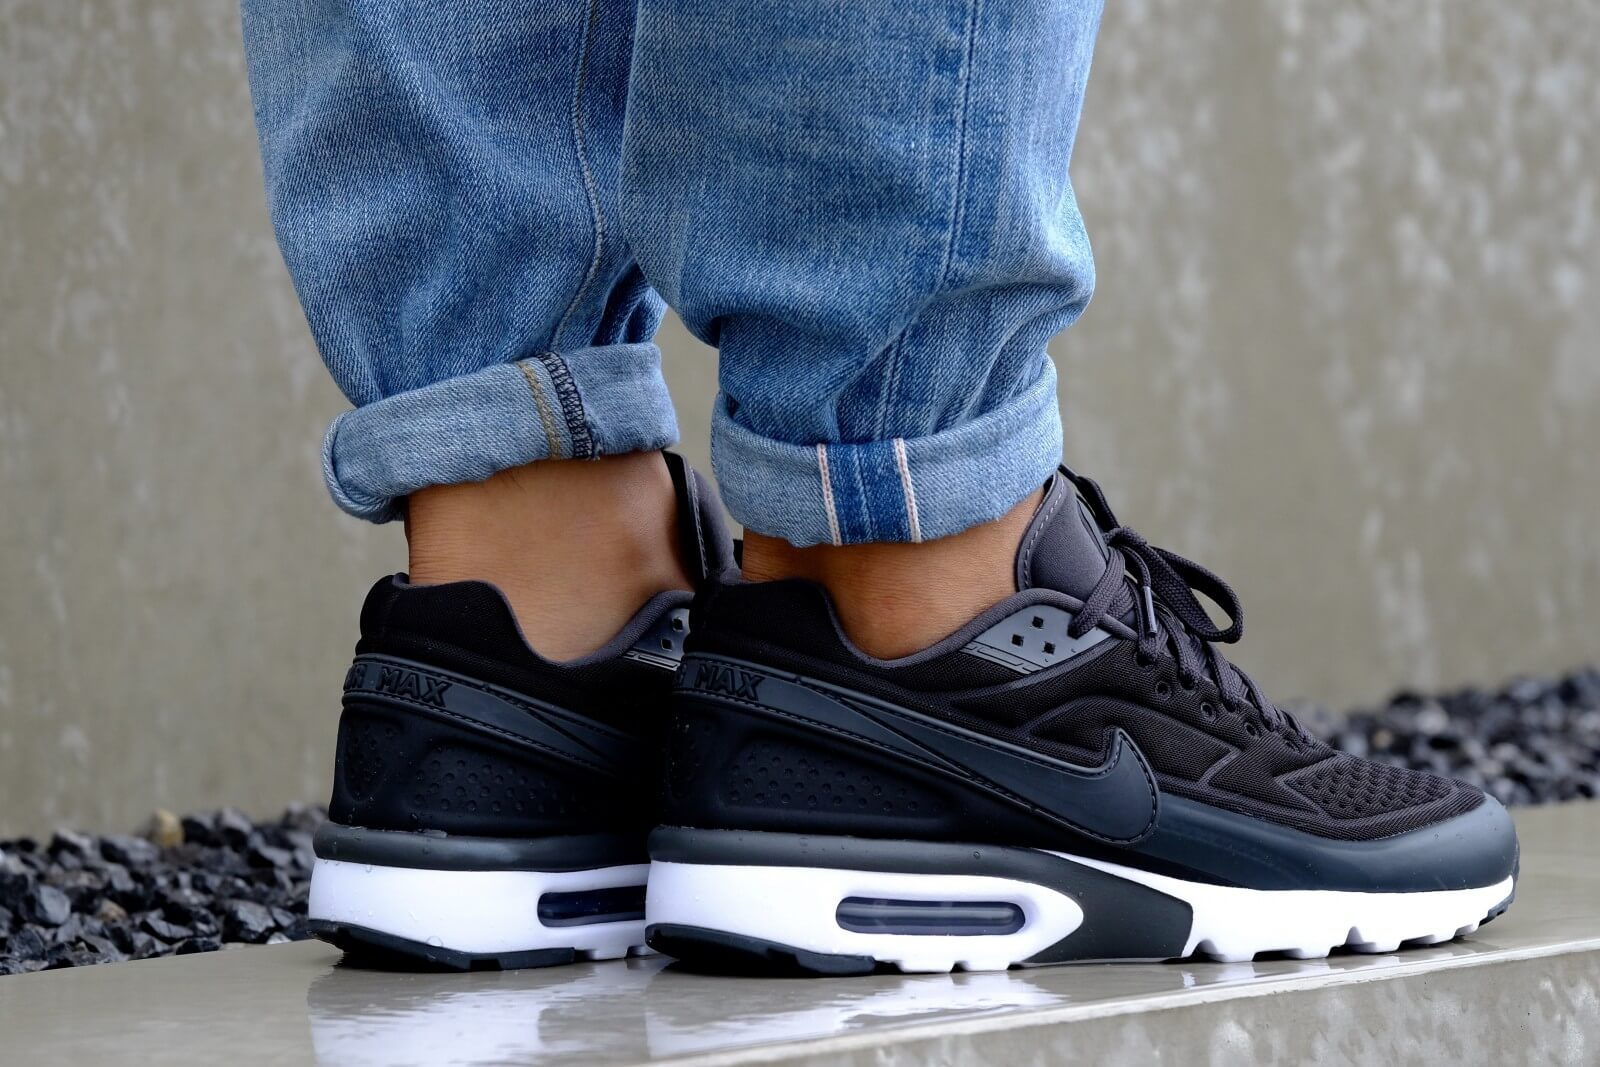 Nike Air Max BW Ultra Special Edition Black Anthracite White 844967 001